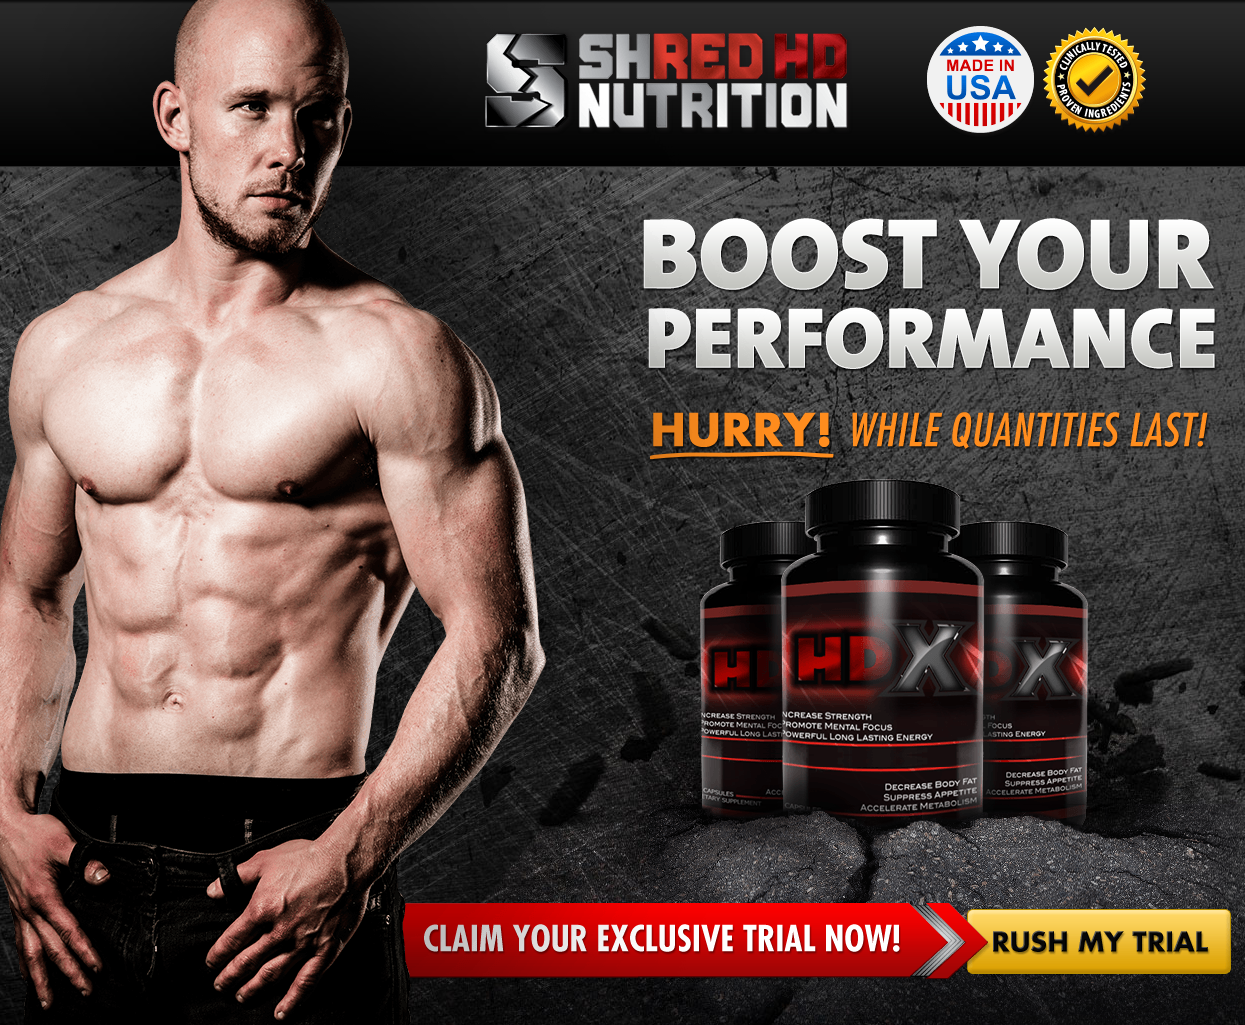 Shred HDX Supplement